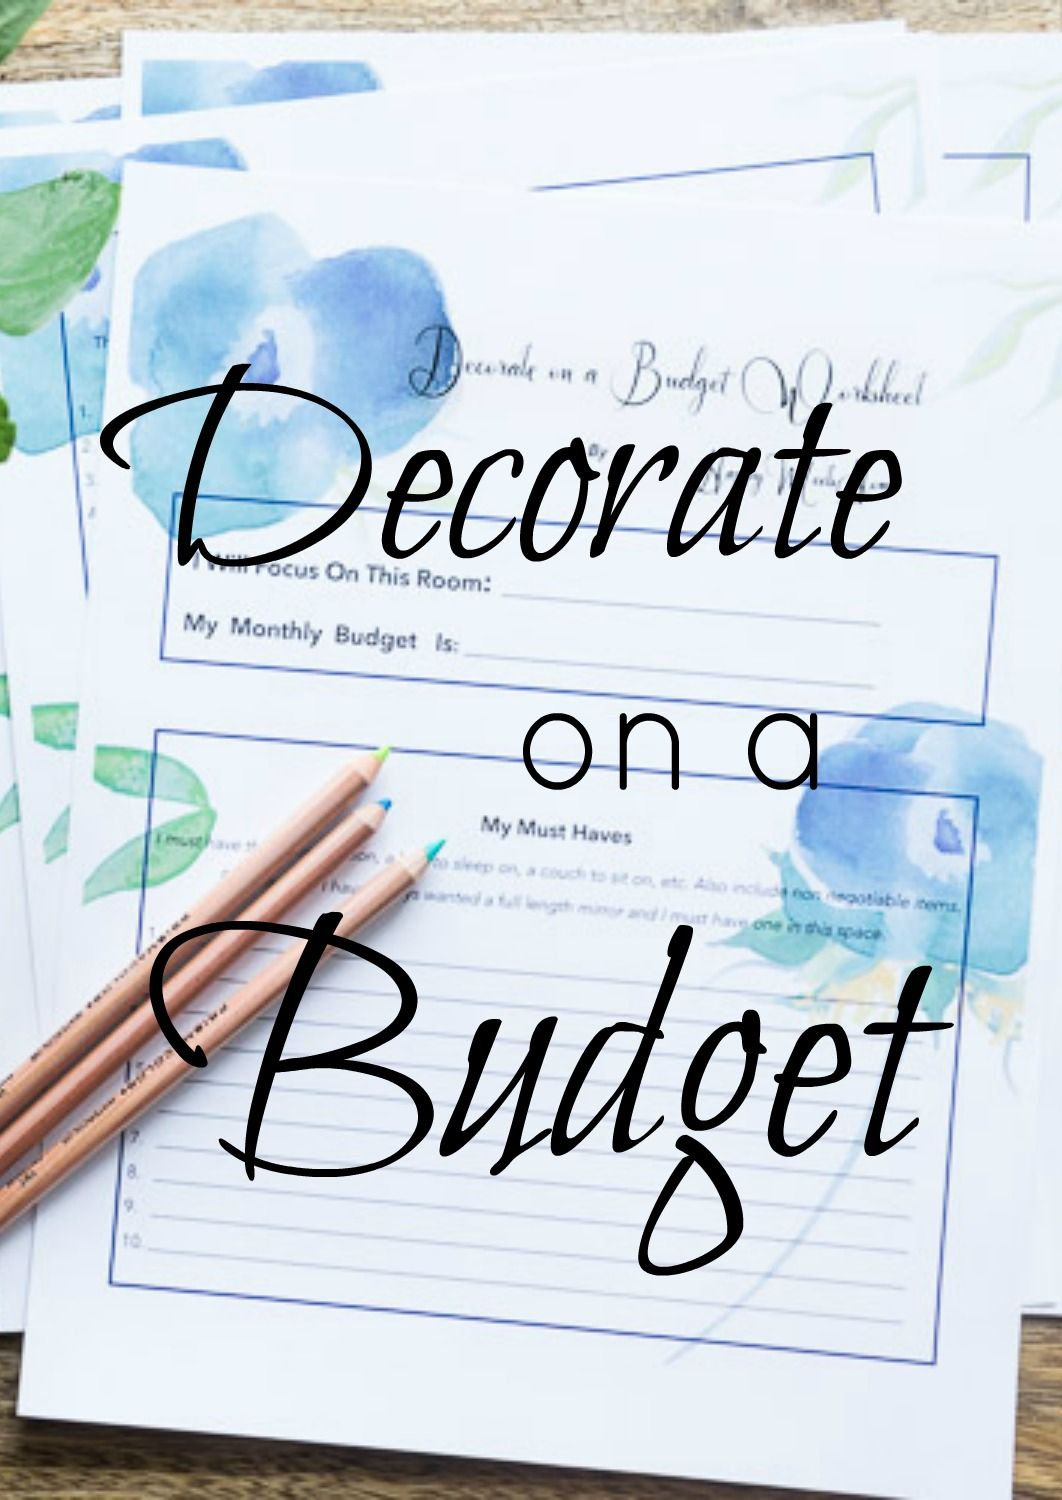 Decorating On A Budget Worksheet